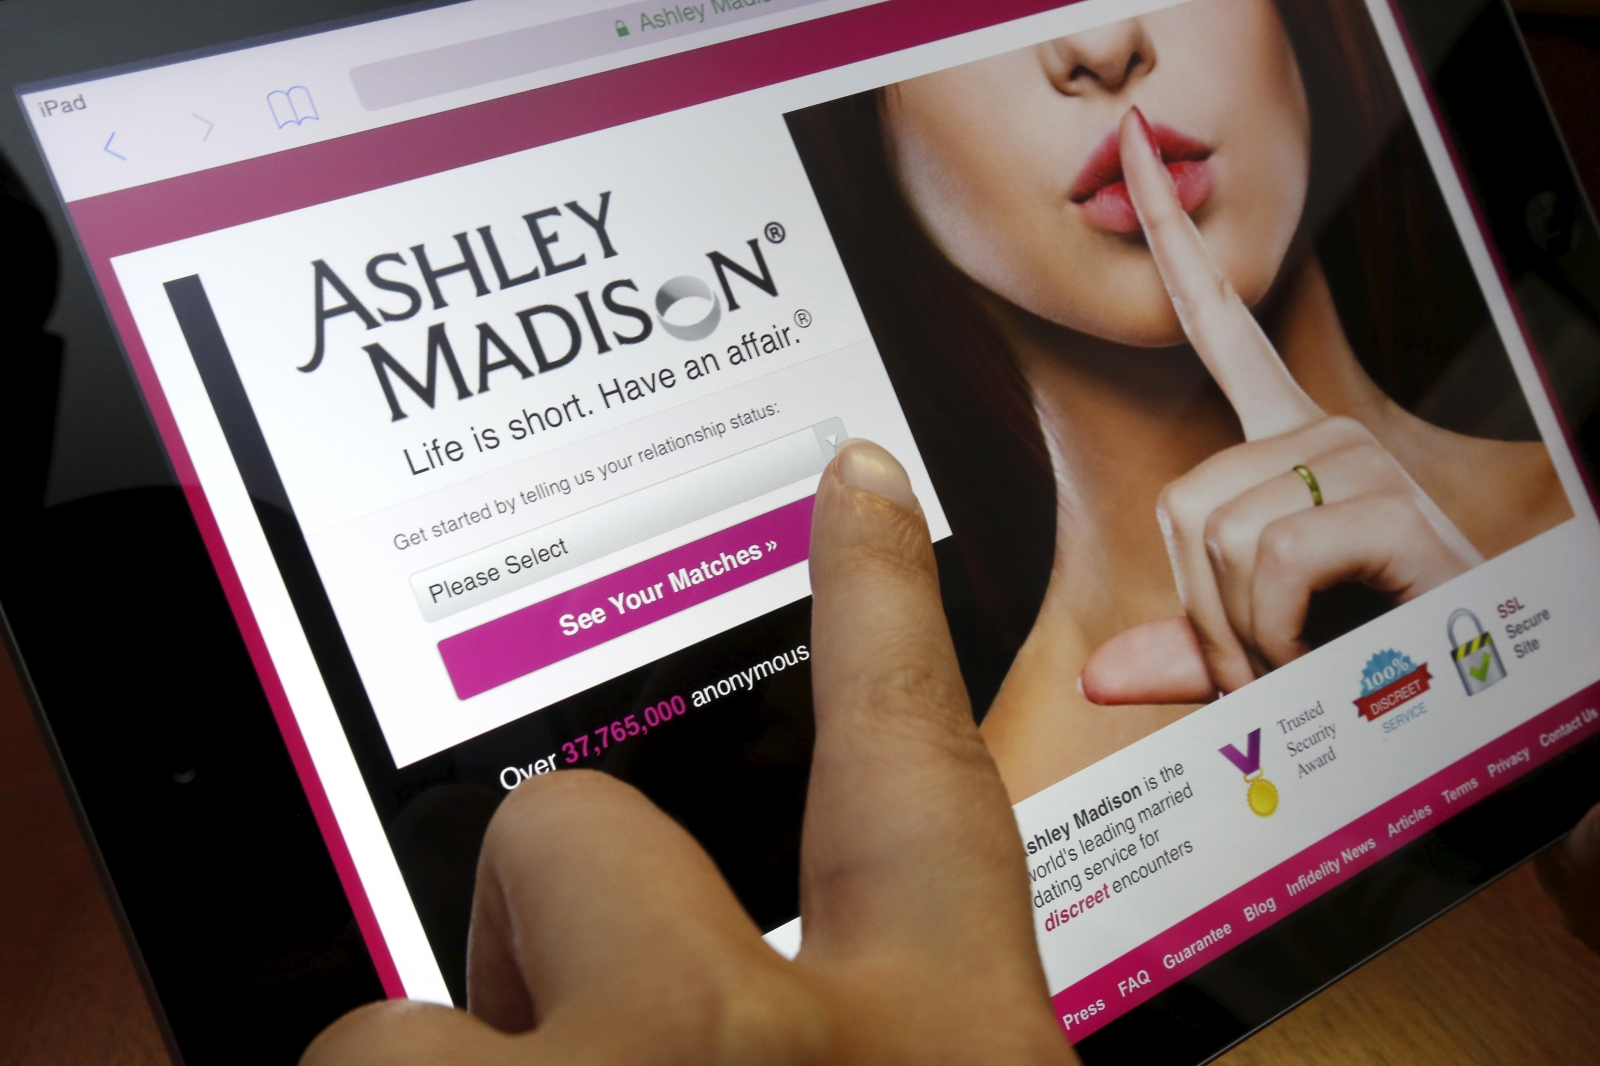 Who hacked Ashley Madison